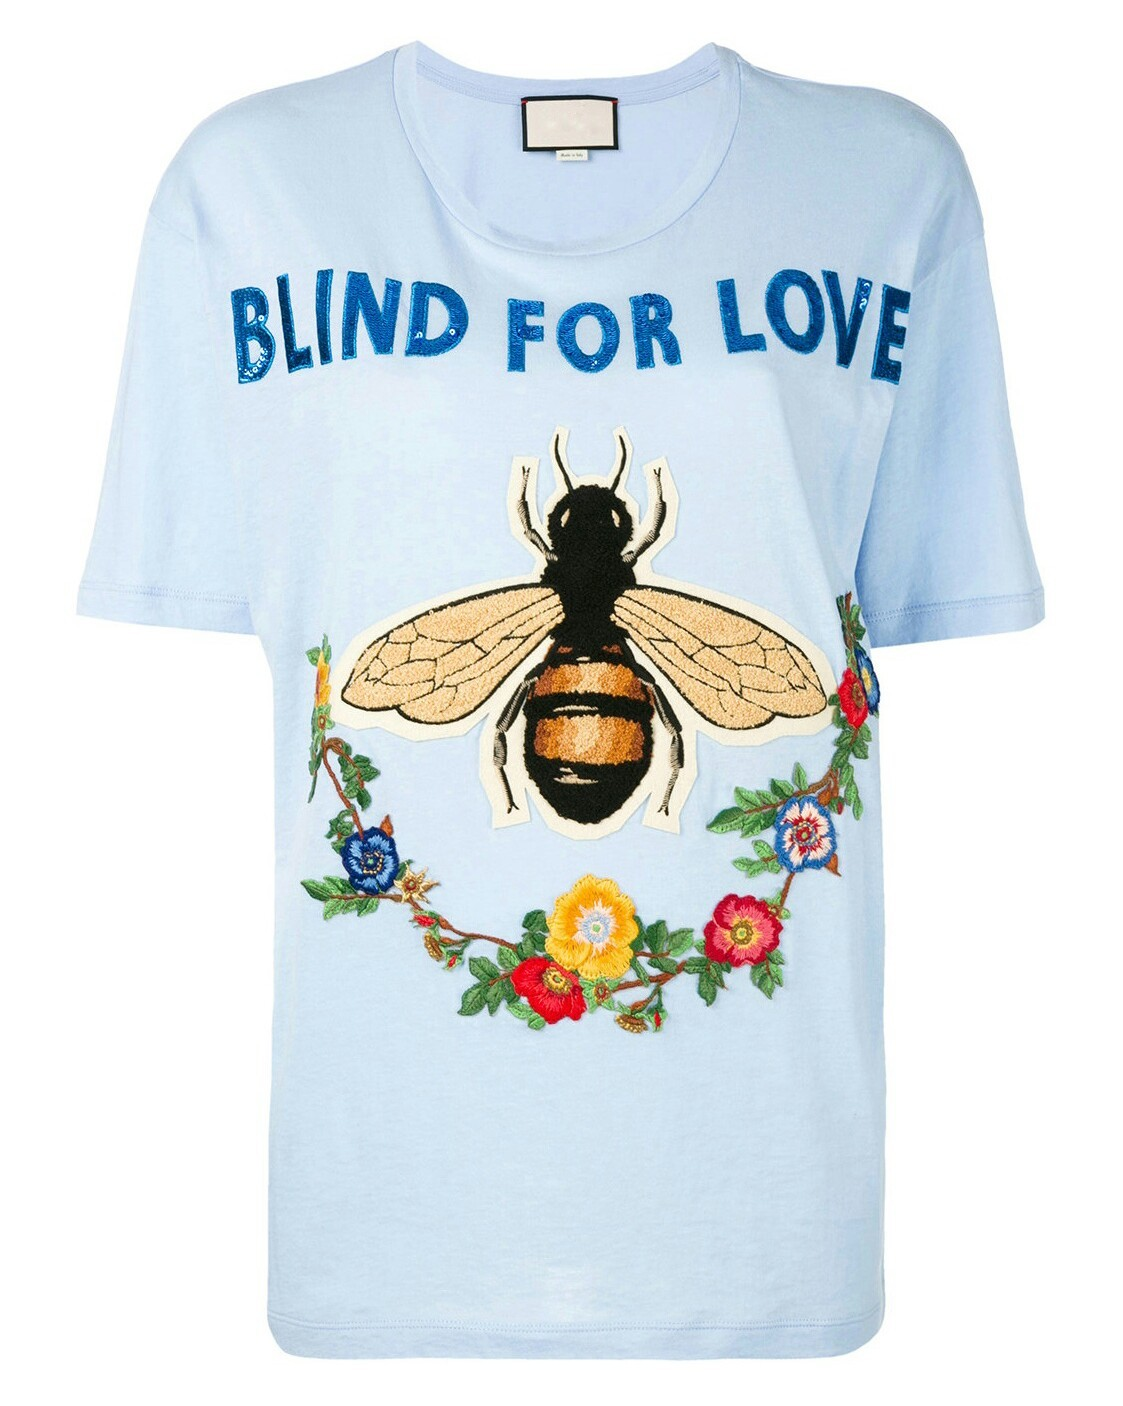 987964eff ... Blind For Love Bee Embroidered T-shirt. 12053337_9886896_1000-01-1.jpg